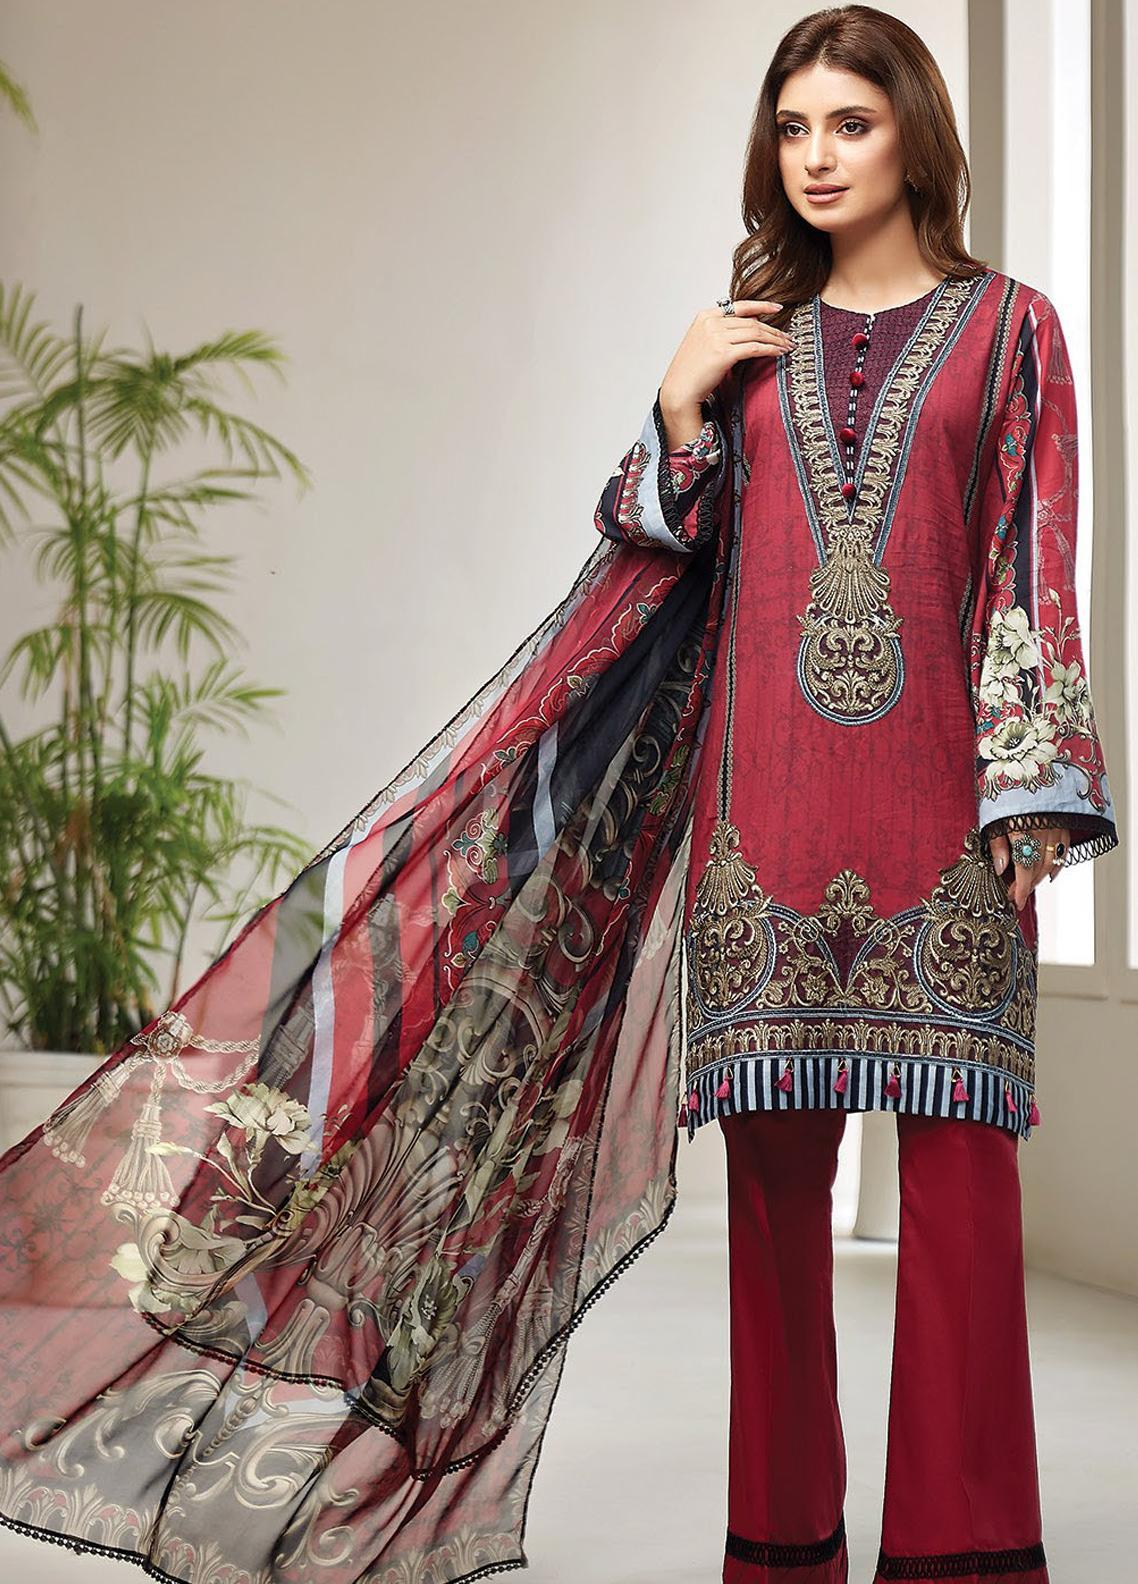 Farasha Embroidered Lawn Unstitched 3 Piece Suit FSH20L 09 ROYAL SCARLET - Spring / Summer Collection